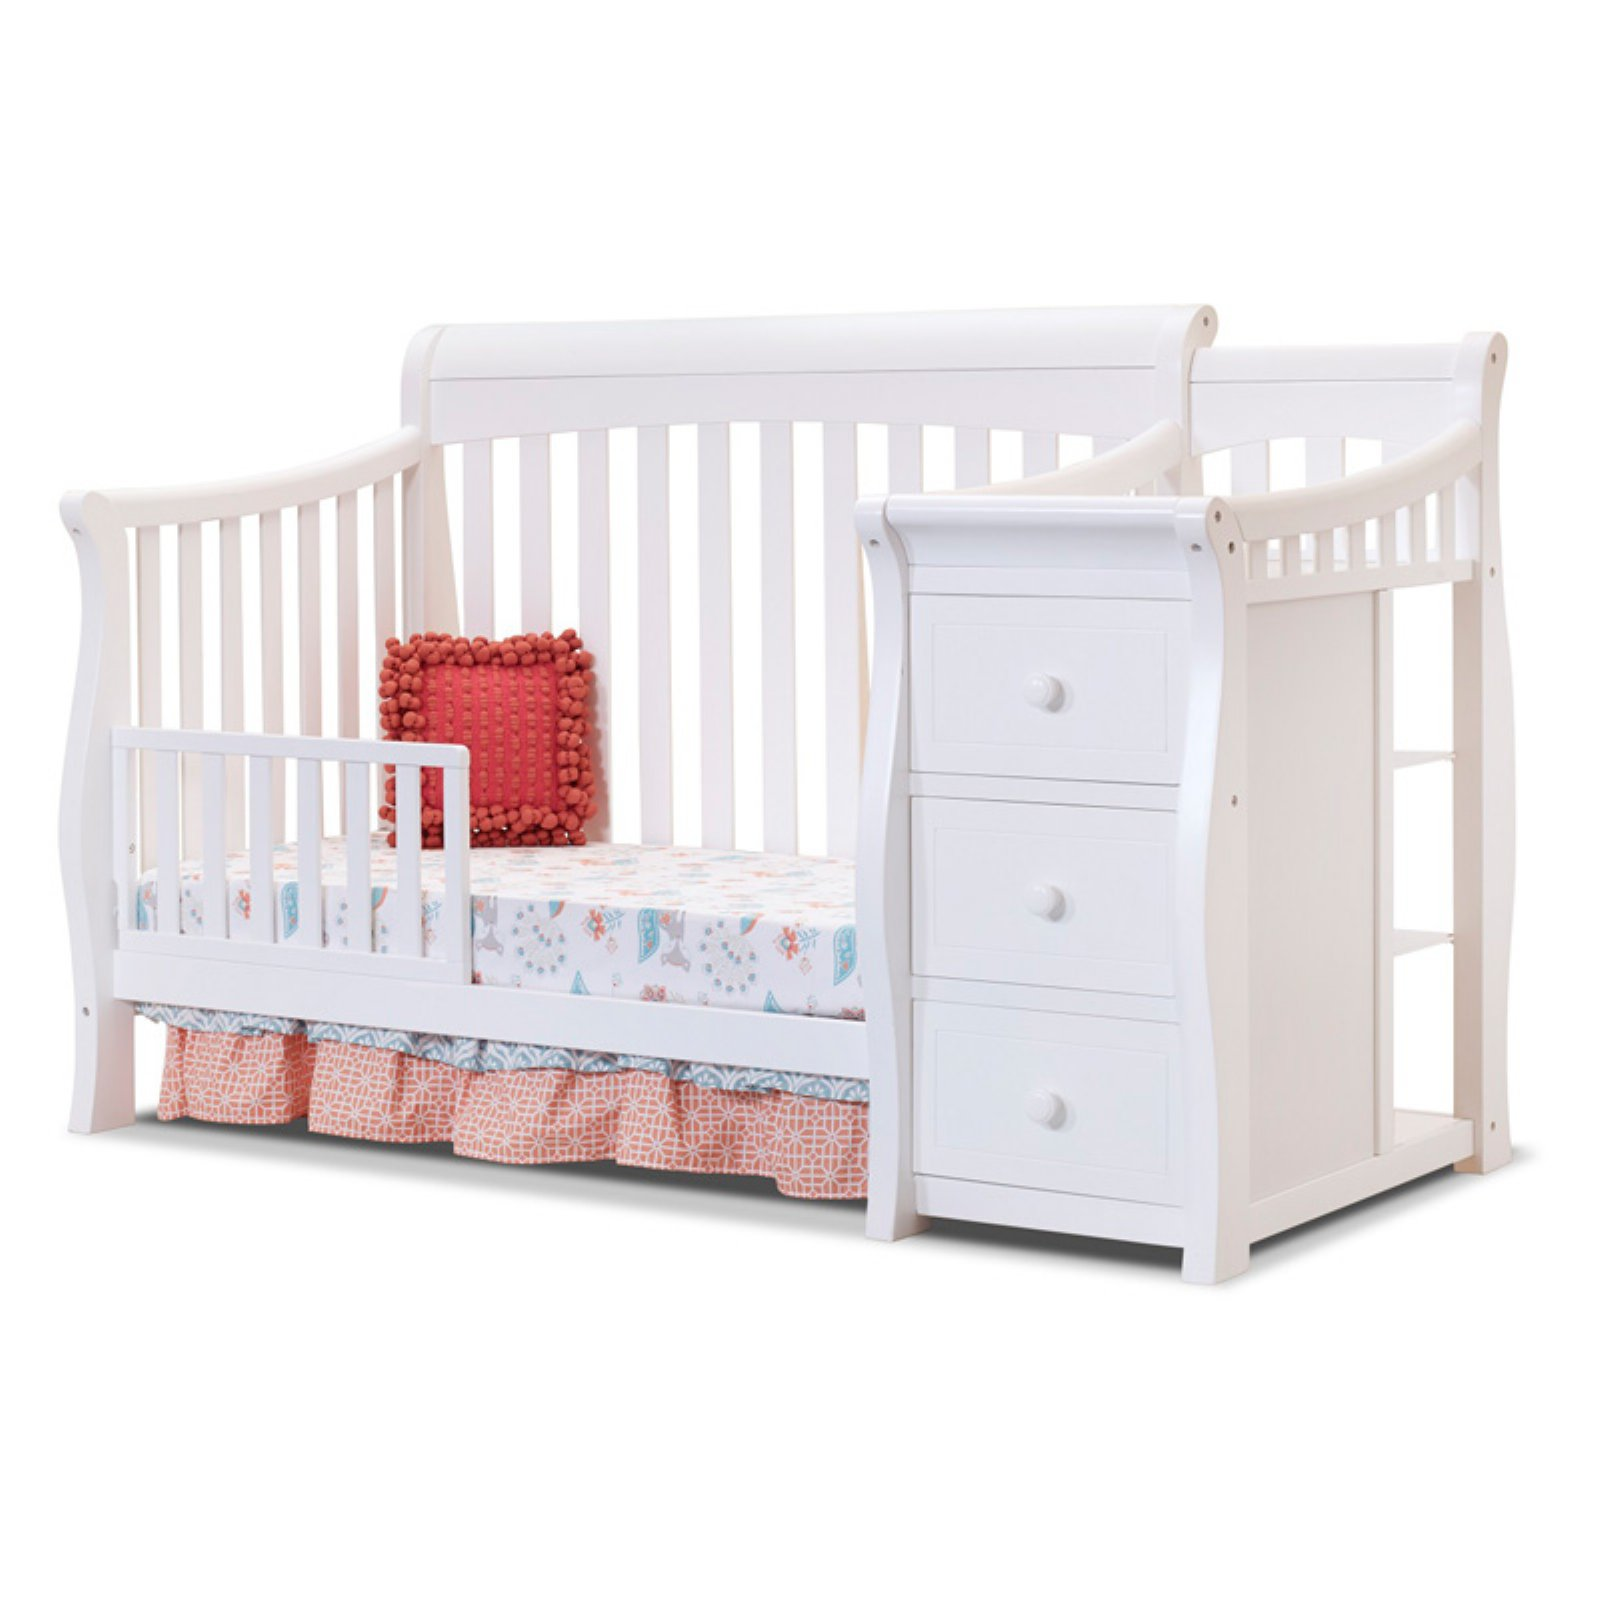 Sorelle Tuscany Toddler Bed Rails